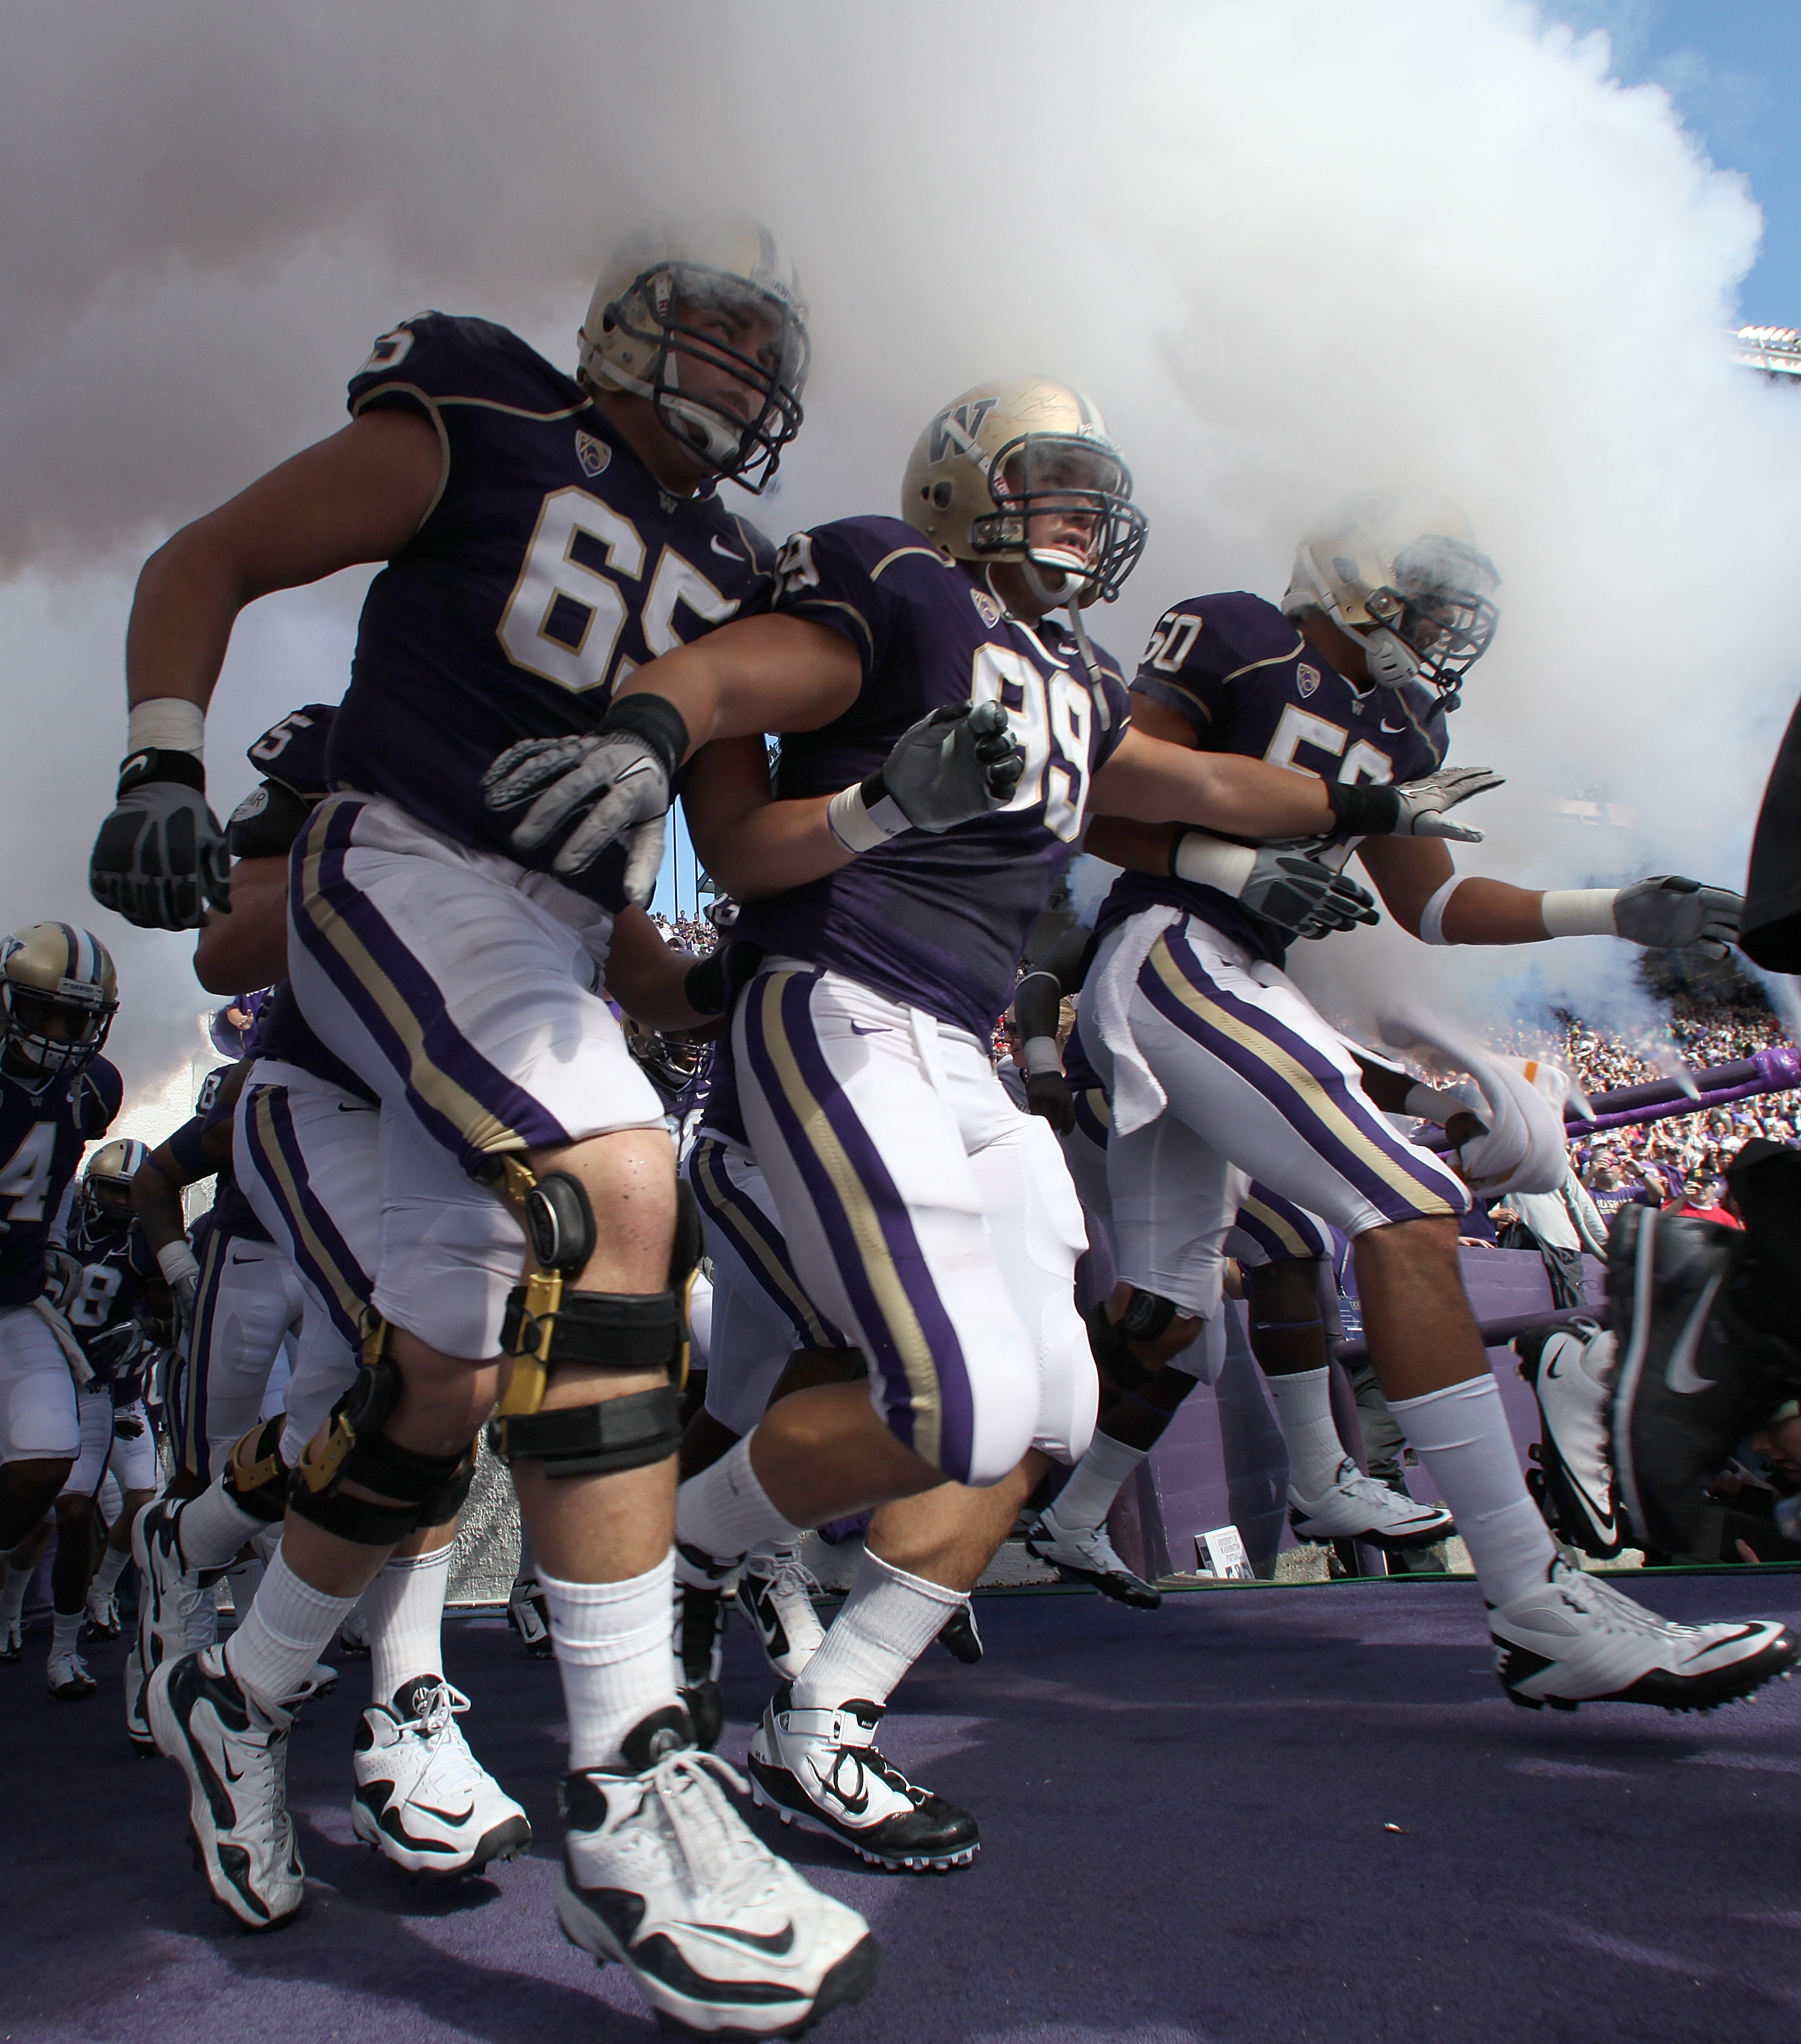 SEATTLE - SEPTEMBER 18:  Ryan Tolar #65, Cameron Elisara #99, and Kalani Aldrich #50 of the Washington Huskies run out of the tunnel prior to the game against the Nebraska Cornhuskers on September 18, 2010 at Husky Stadium in Seattle, Washington. The Corn